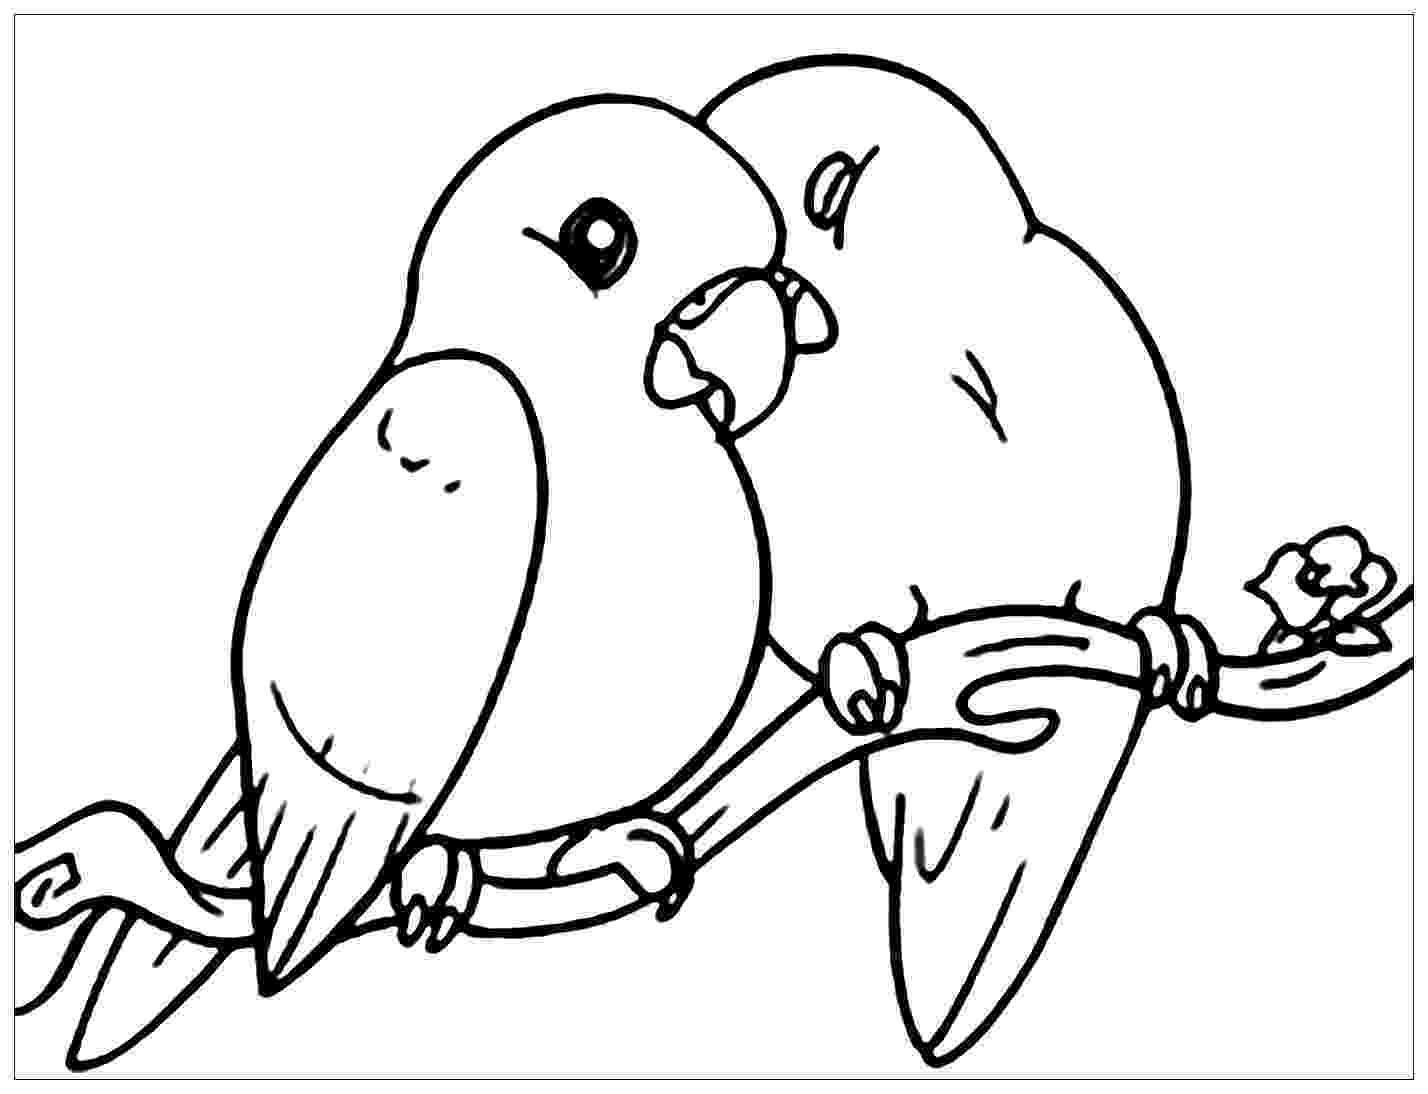 images of birds for colouring bird coloring pages of images birds for colouring